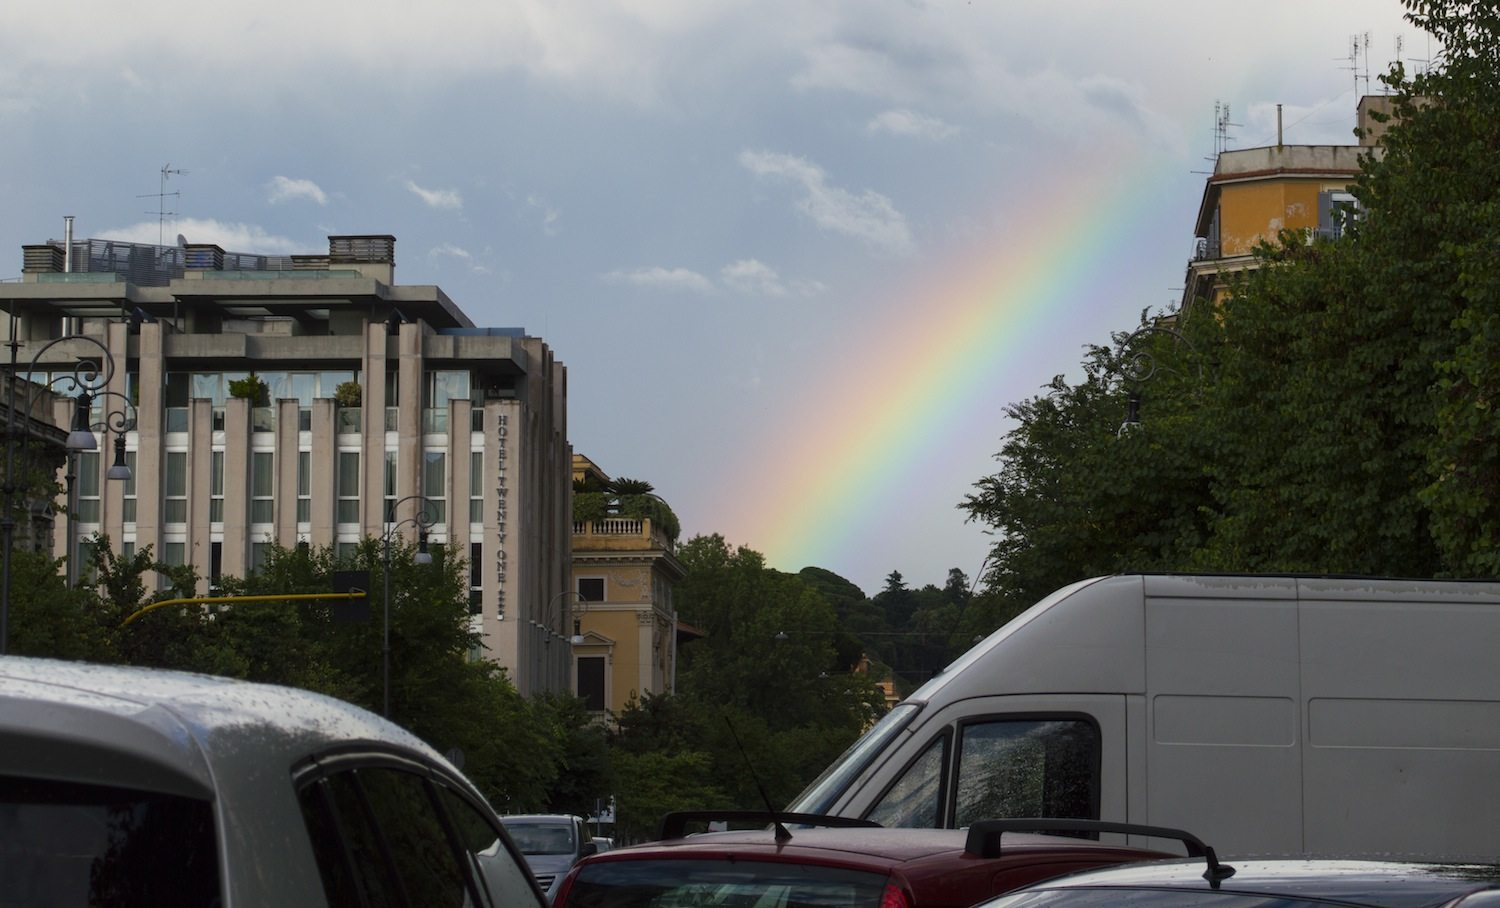 Rainbow in Rome by Christina Guan